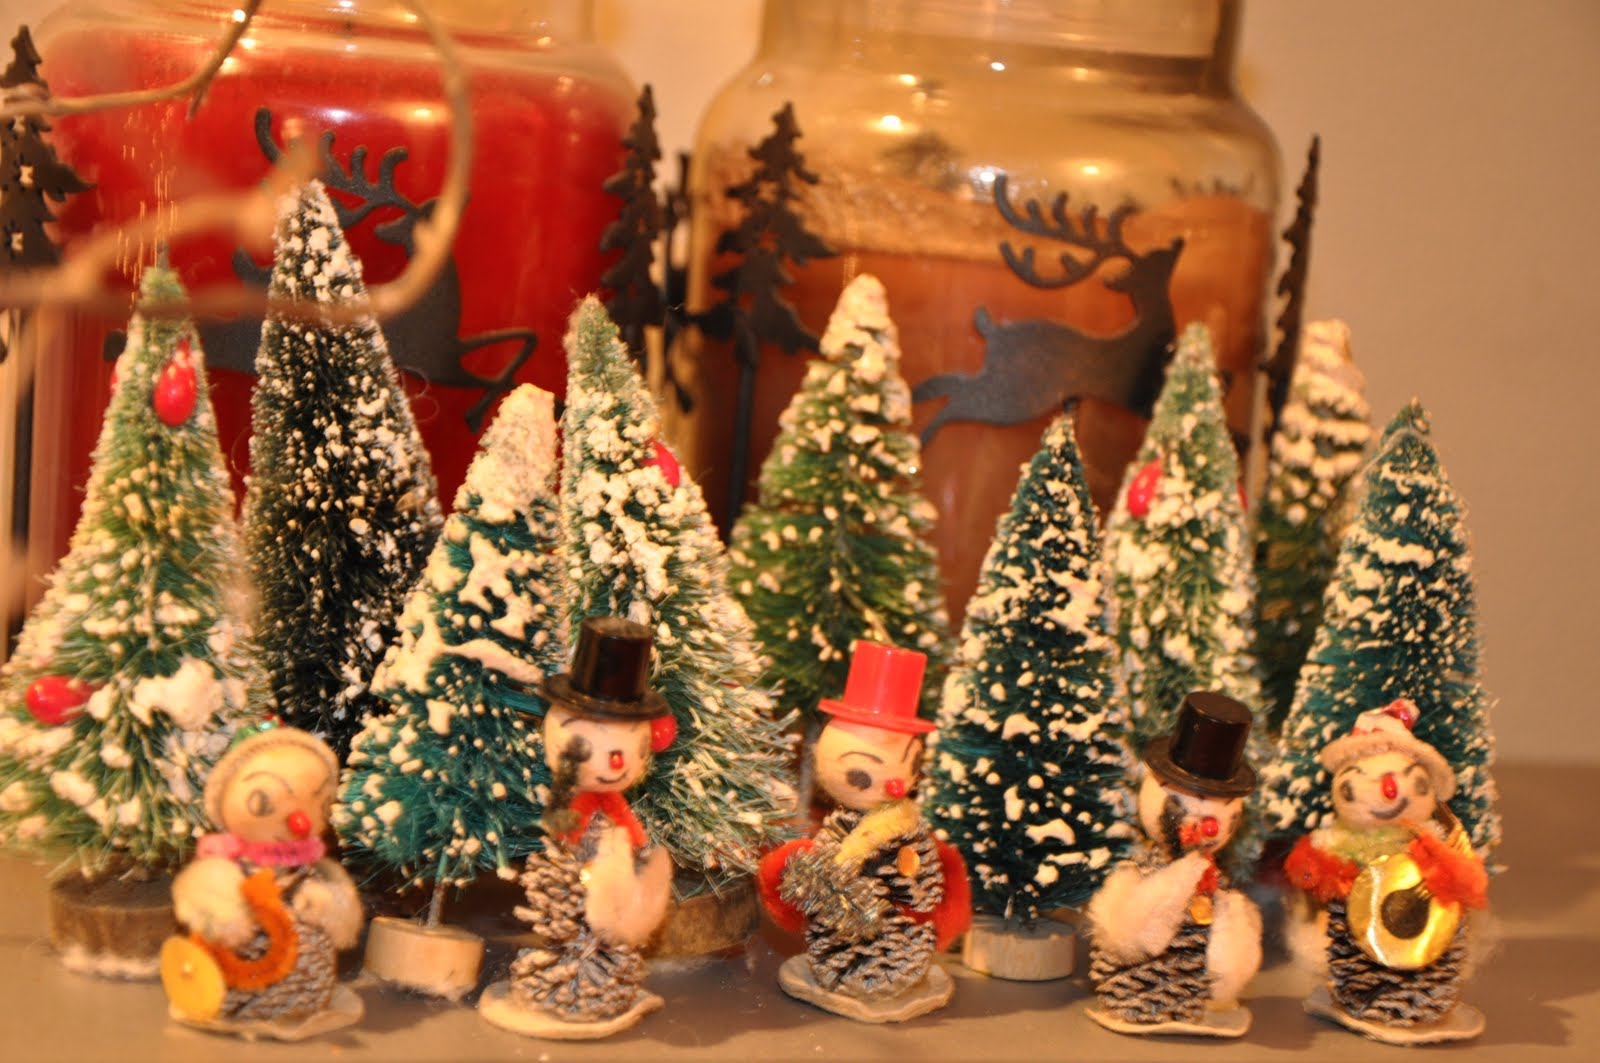 Vintage Christmas Decorations.Swoon Studios Musings Vintage Wednesday Vintage Christmas